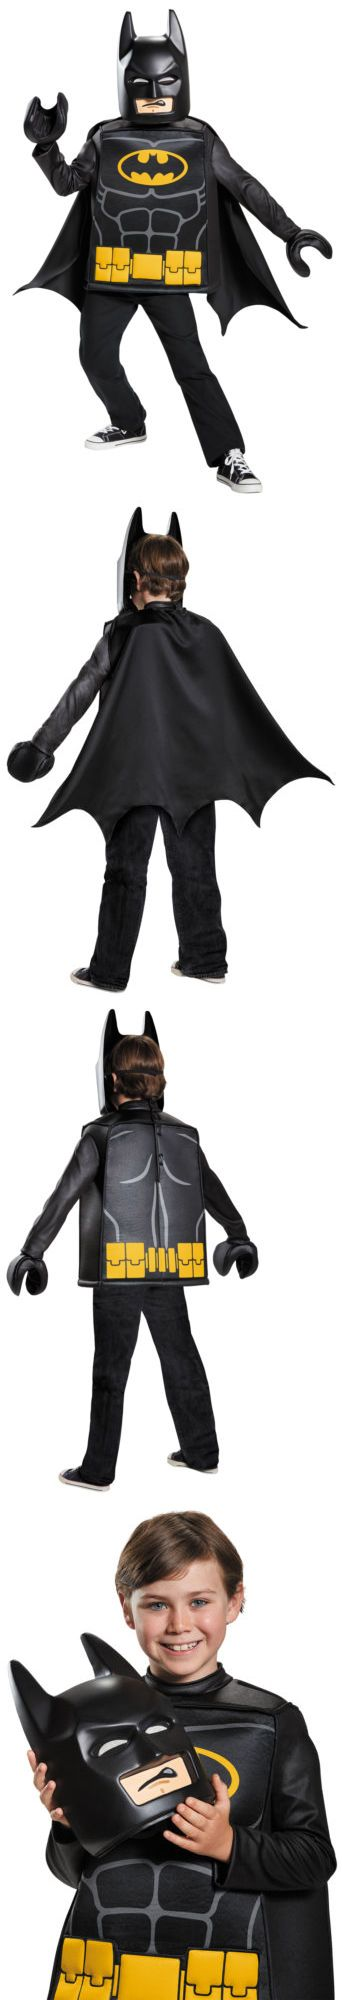 Kids Costumes: Batman Lego Movie Classic Child Costume Size 4-6 -> BUY IT NOW ONLY: $46.5 on eBay!